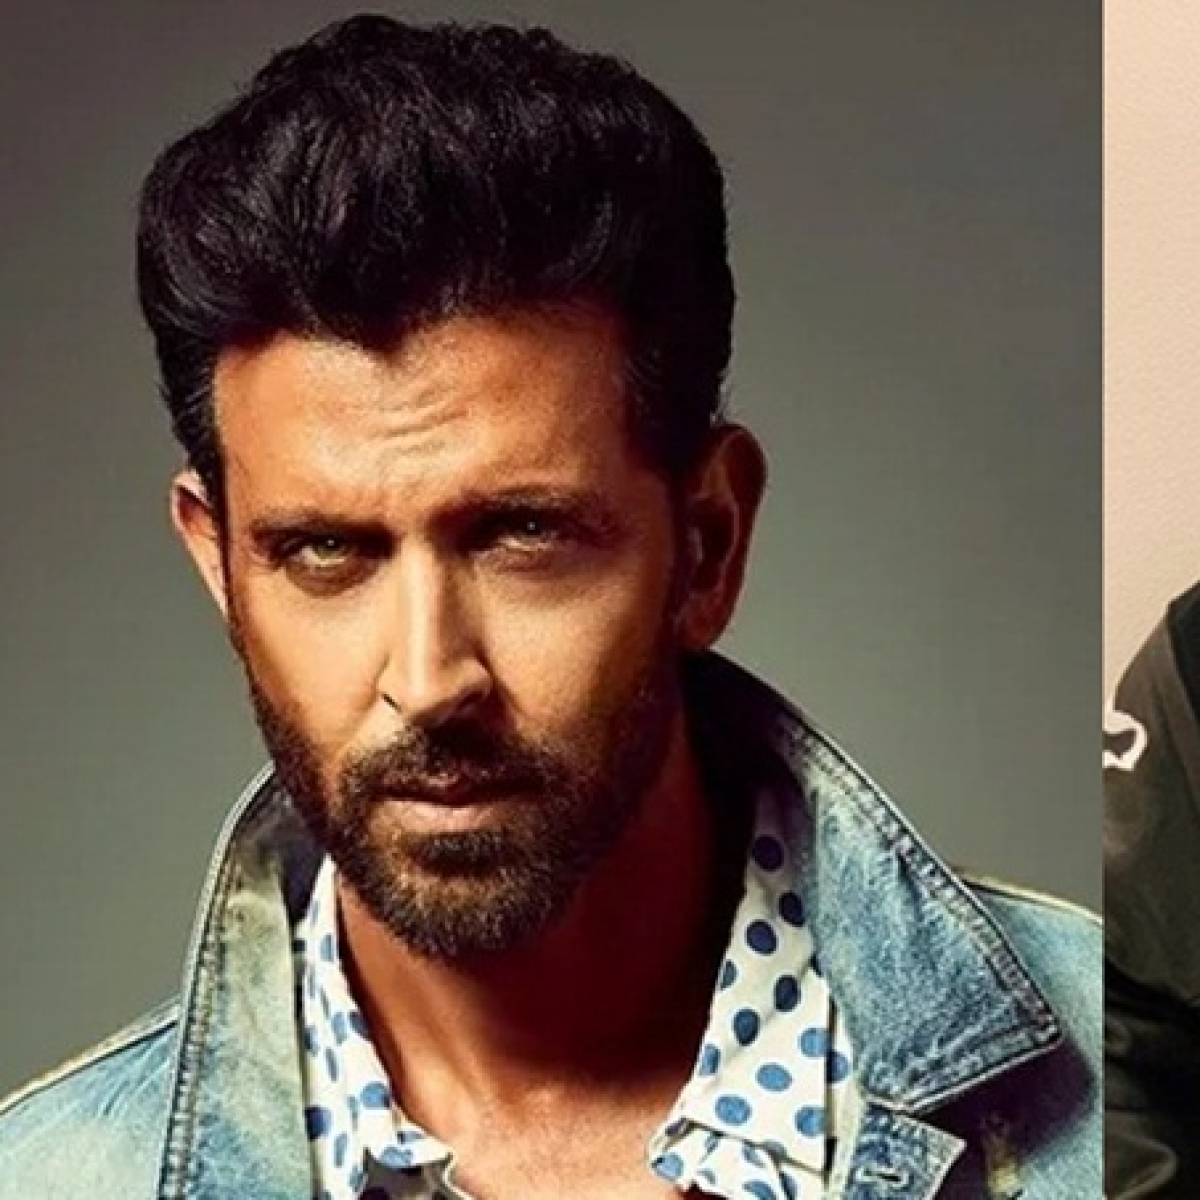 Hrithik Roshan to star in Karan Johar's adaption of 'R.N. Kao: Gentleman Spymaster'?